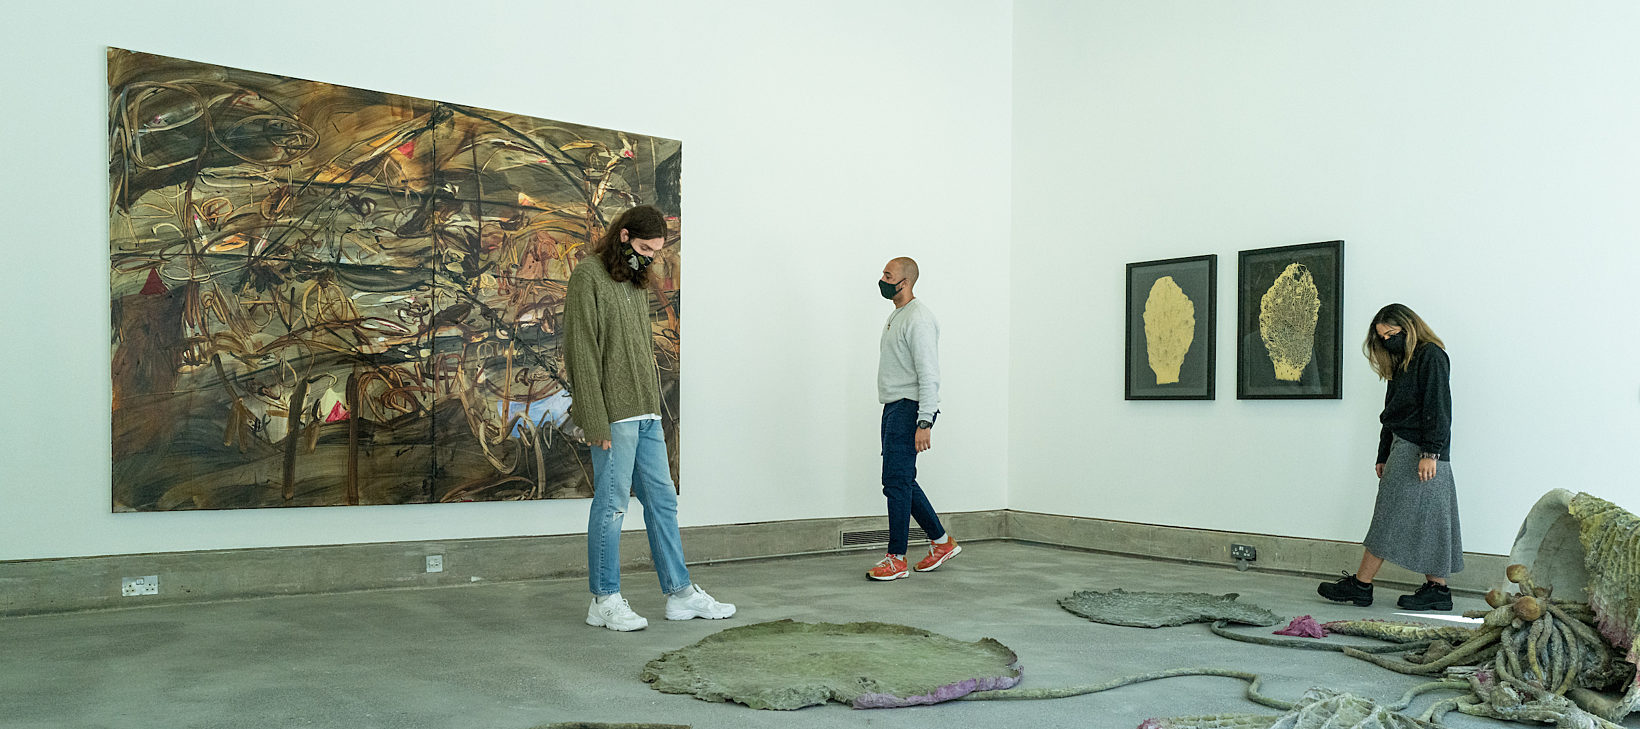 Three people are walking around a gallery space with paintings on the wall and sculptures on the floor.